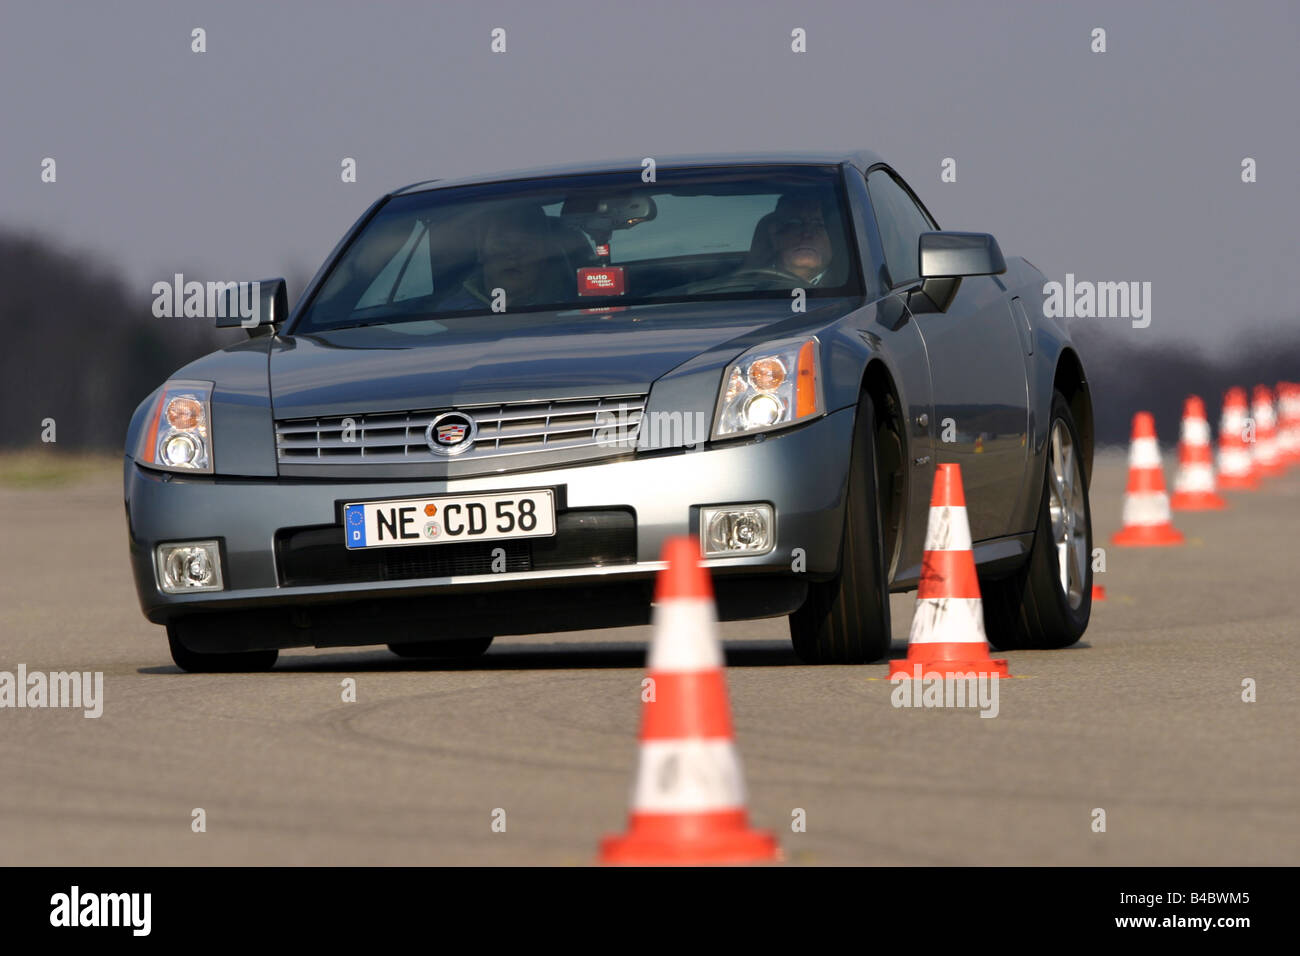 Xlr Stock Photos Images Page 3 Alamy Cadillac Wiring Diagram Car Convertible Model Year 2004 Anthracite Closed Top